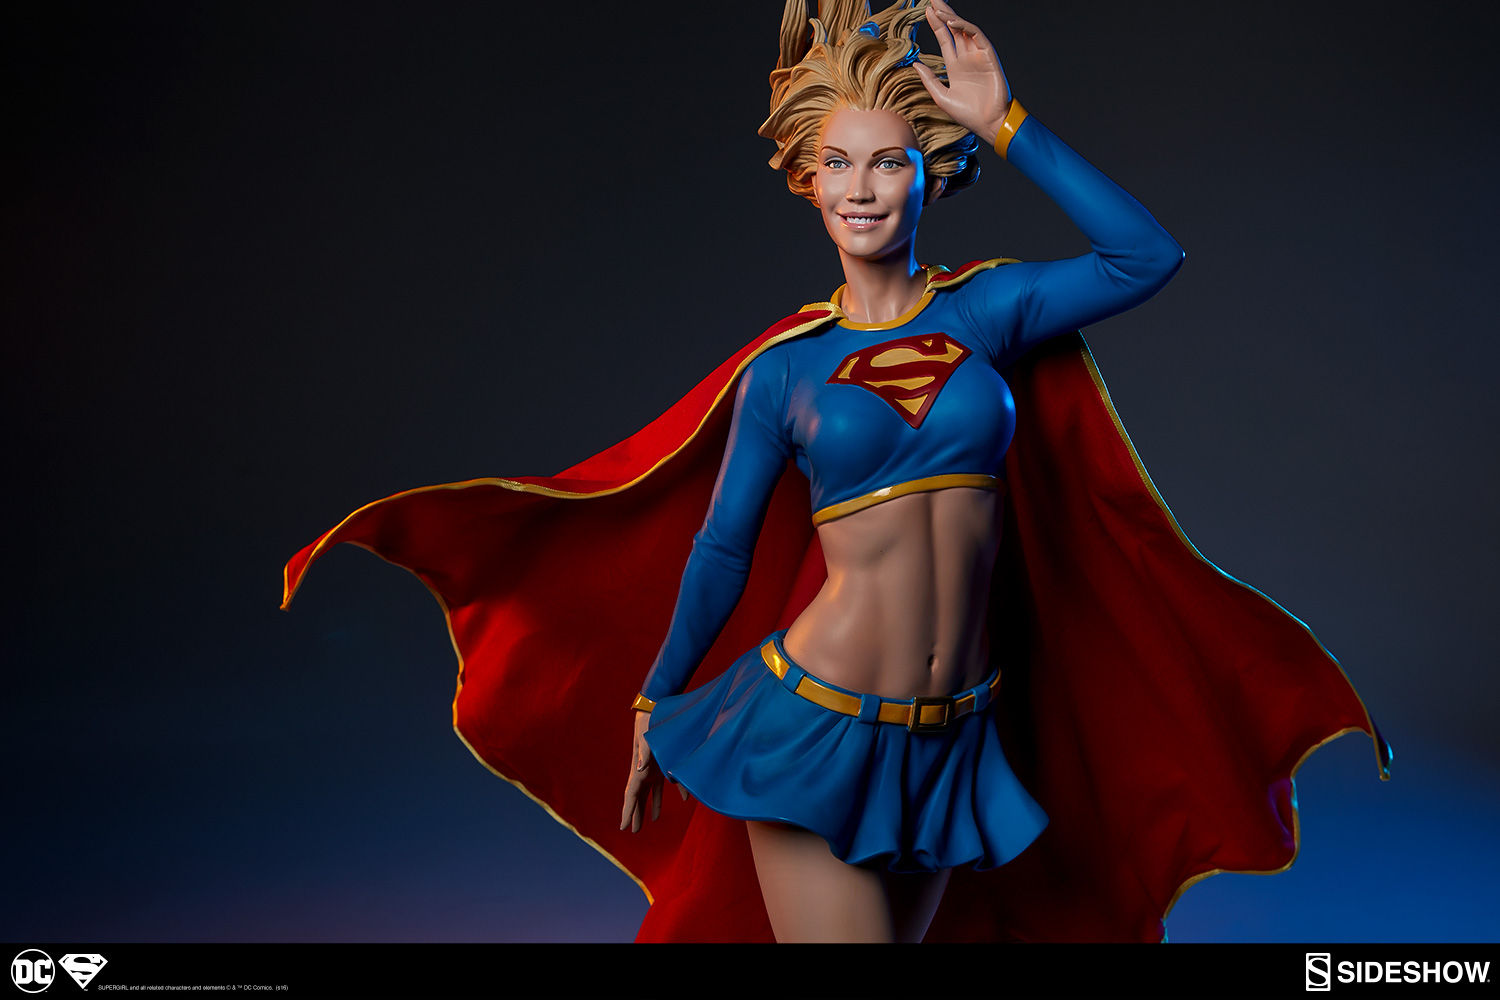 Marvel Power Girl Wallpaper Dc Comics Supergirl Premium Format Tm Figure By Sideshow